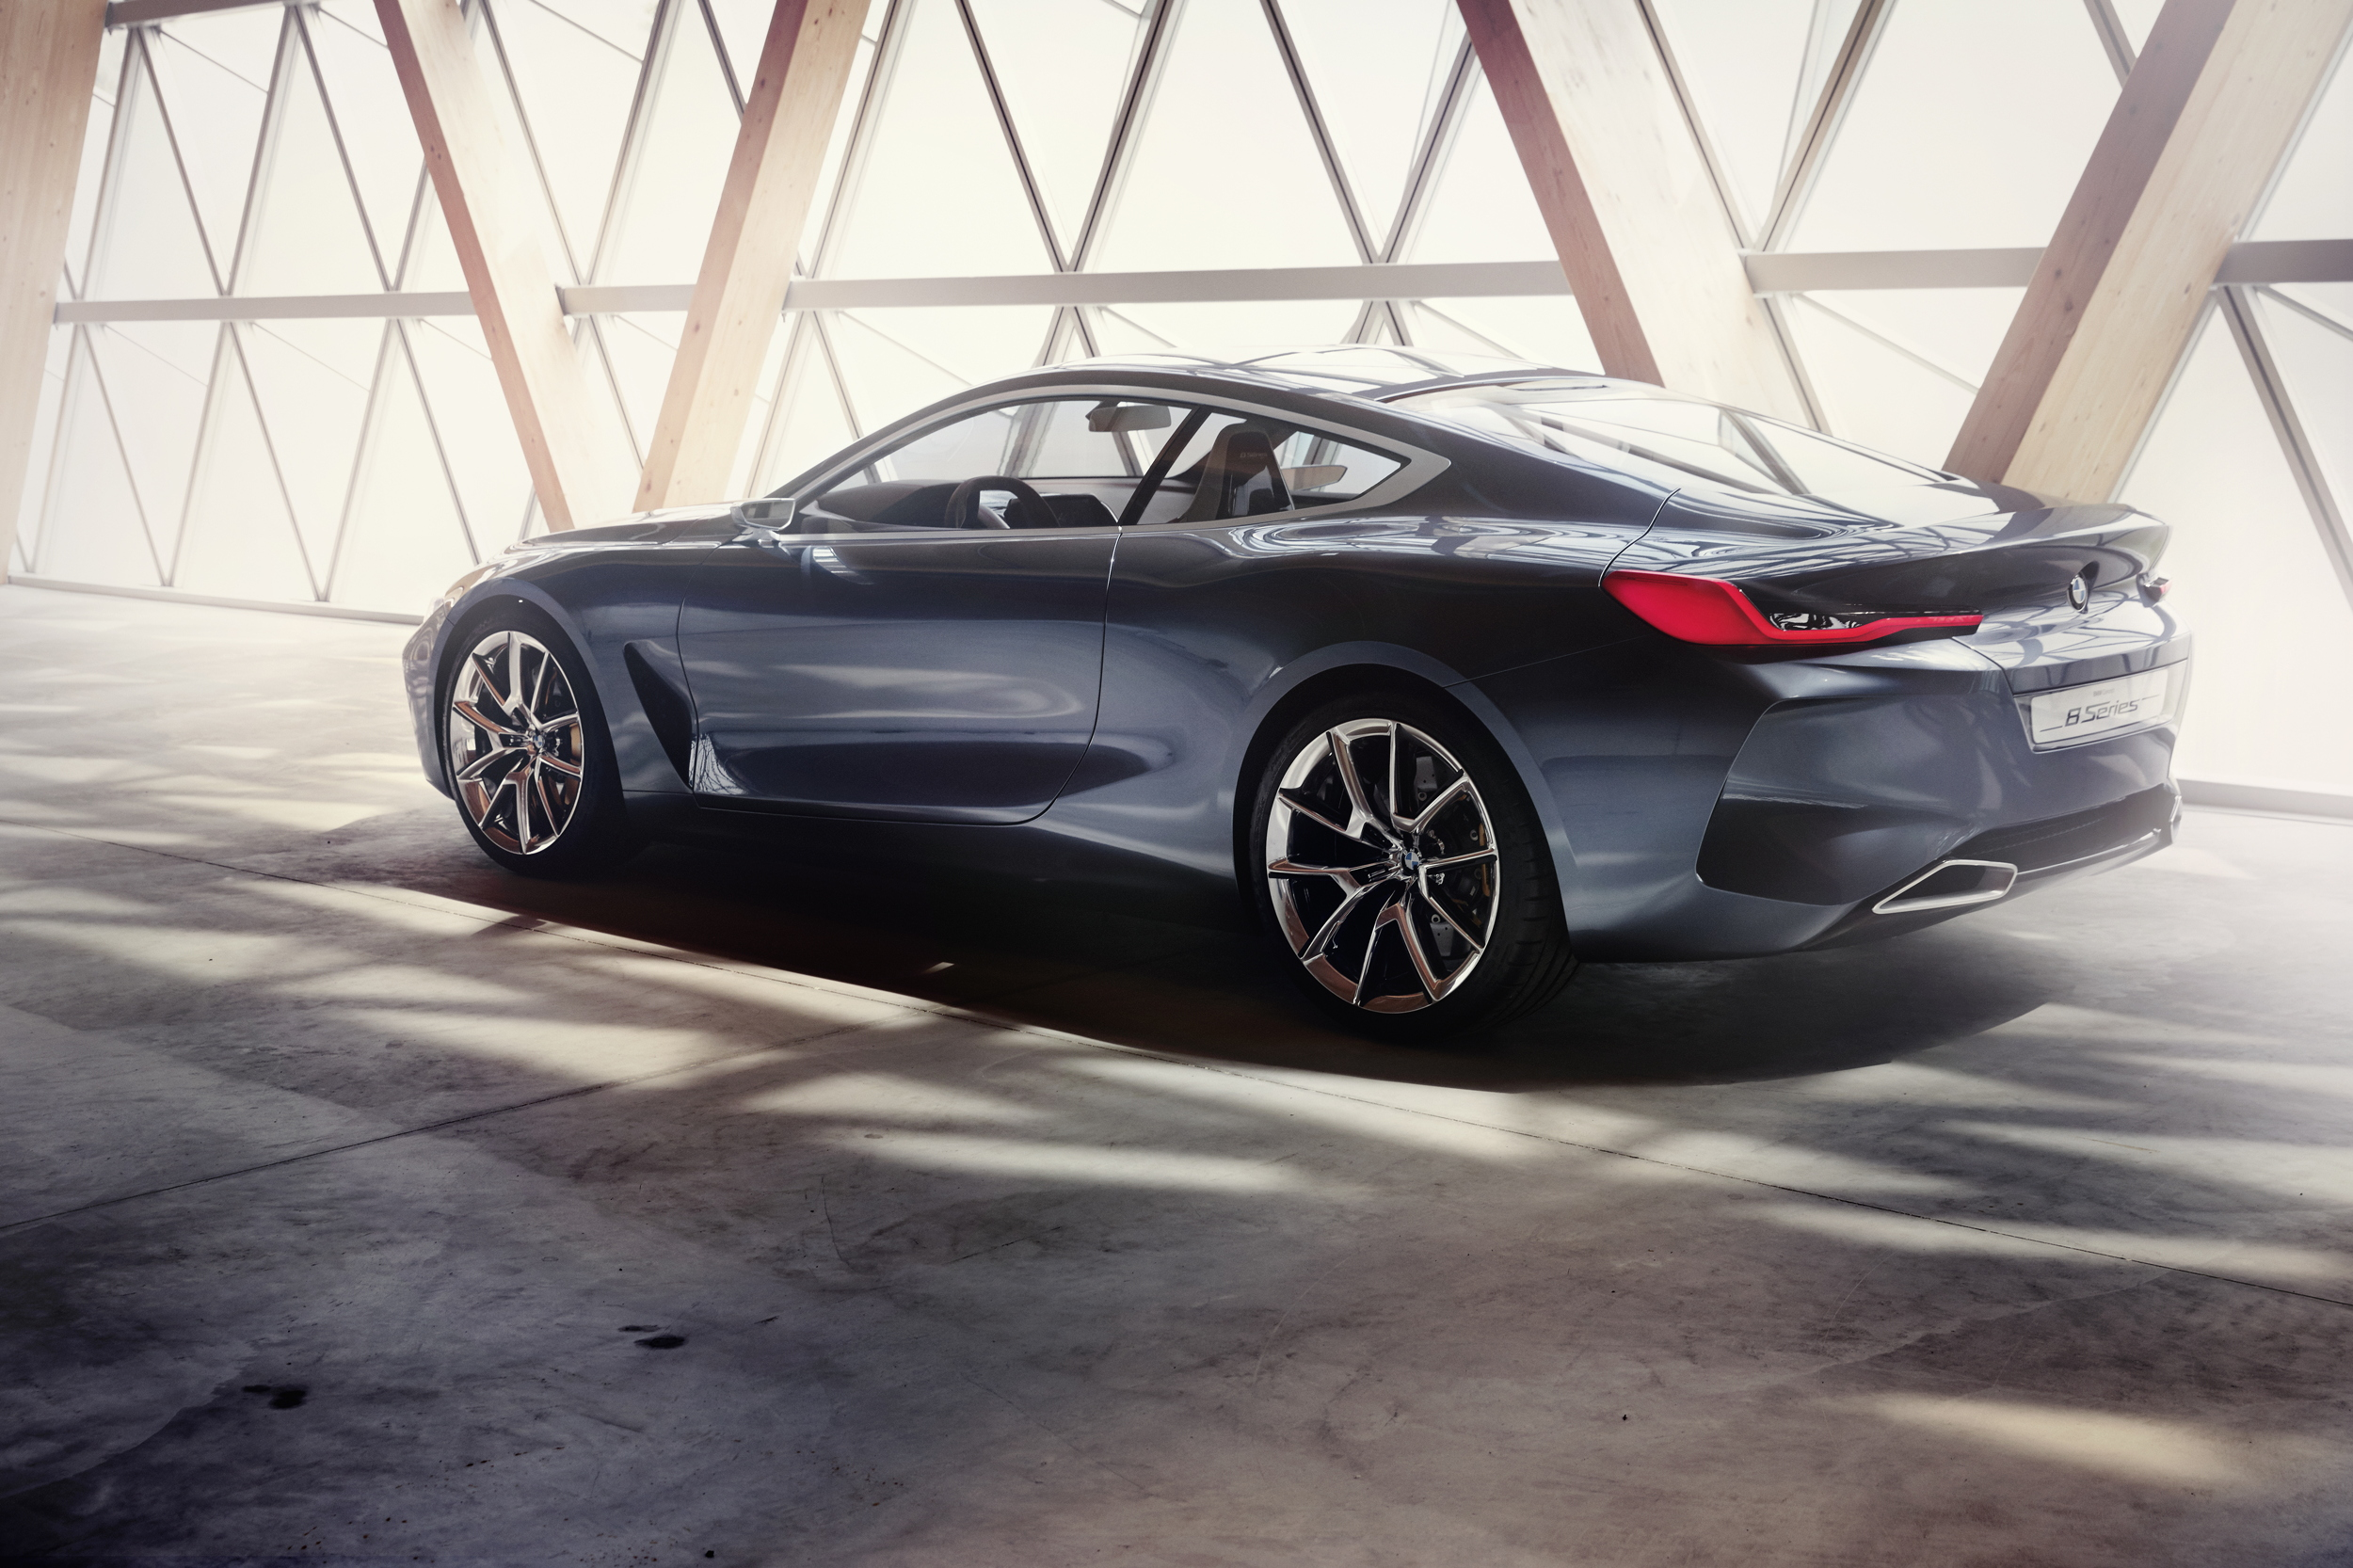 BMW Concept 8 Series rear angle